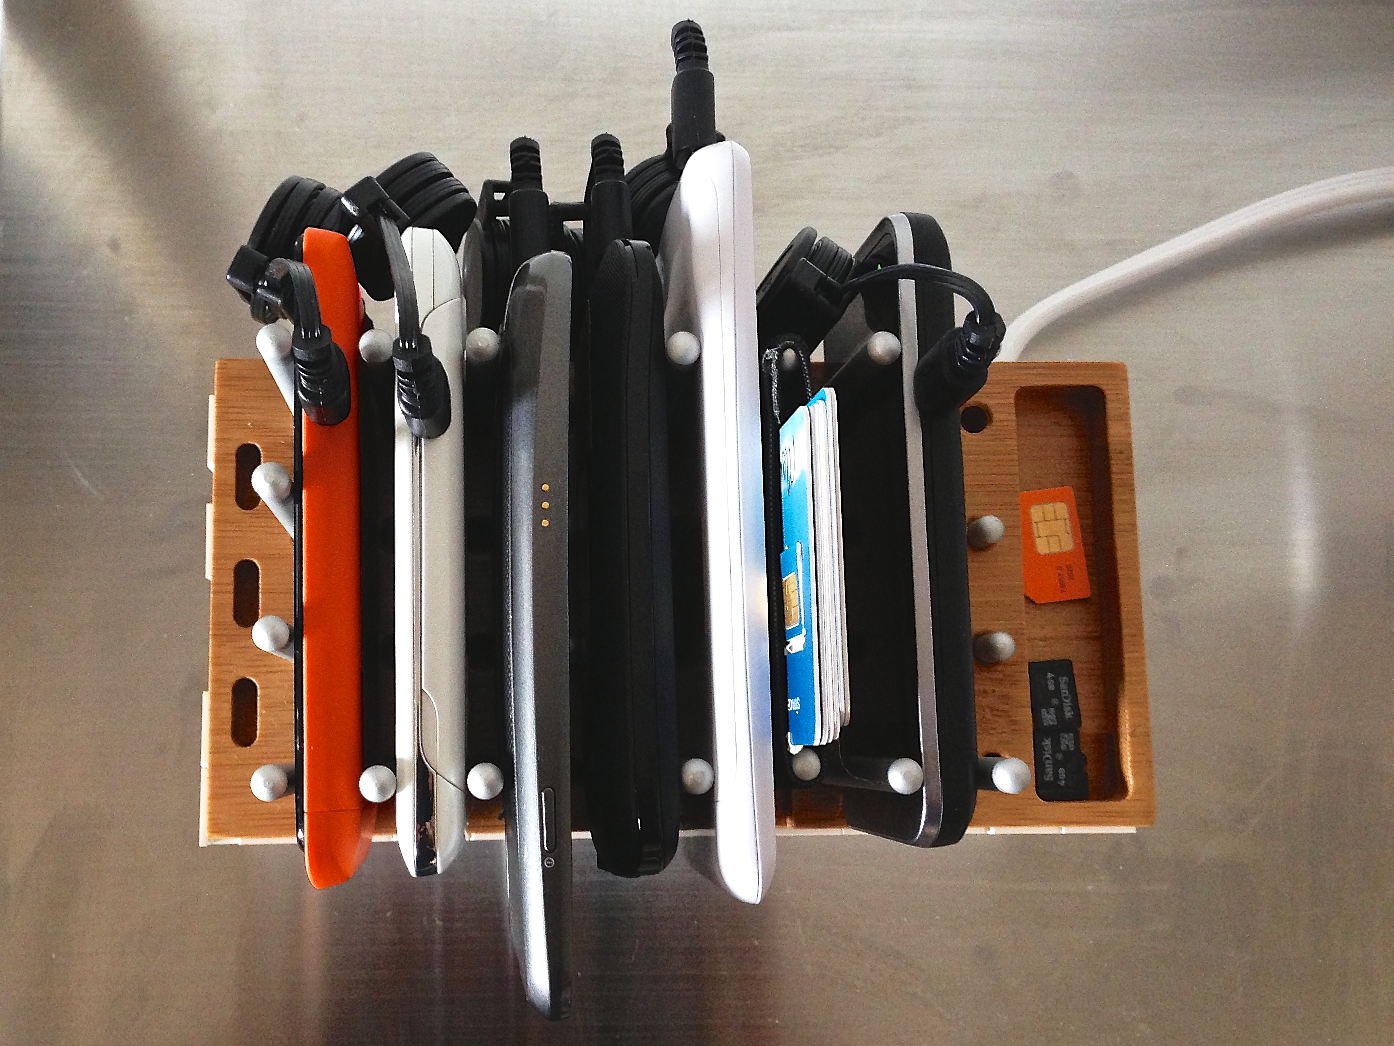 Diy 6 device usb charging rack with modo and legos Charger cord organizer diy